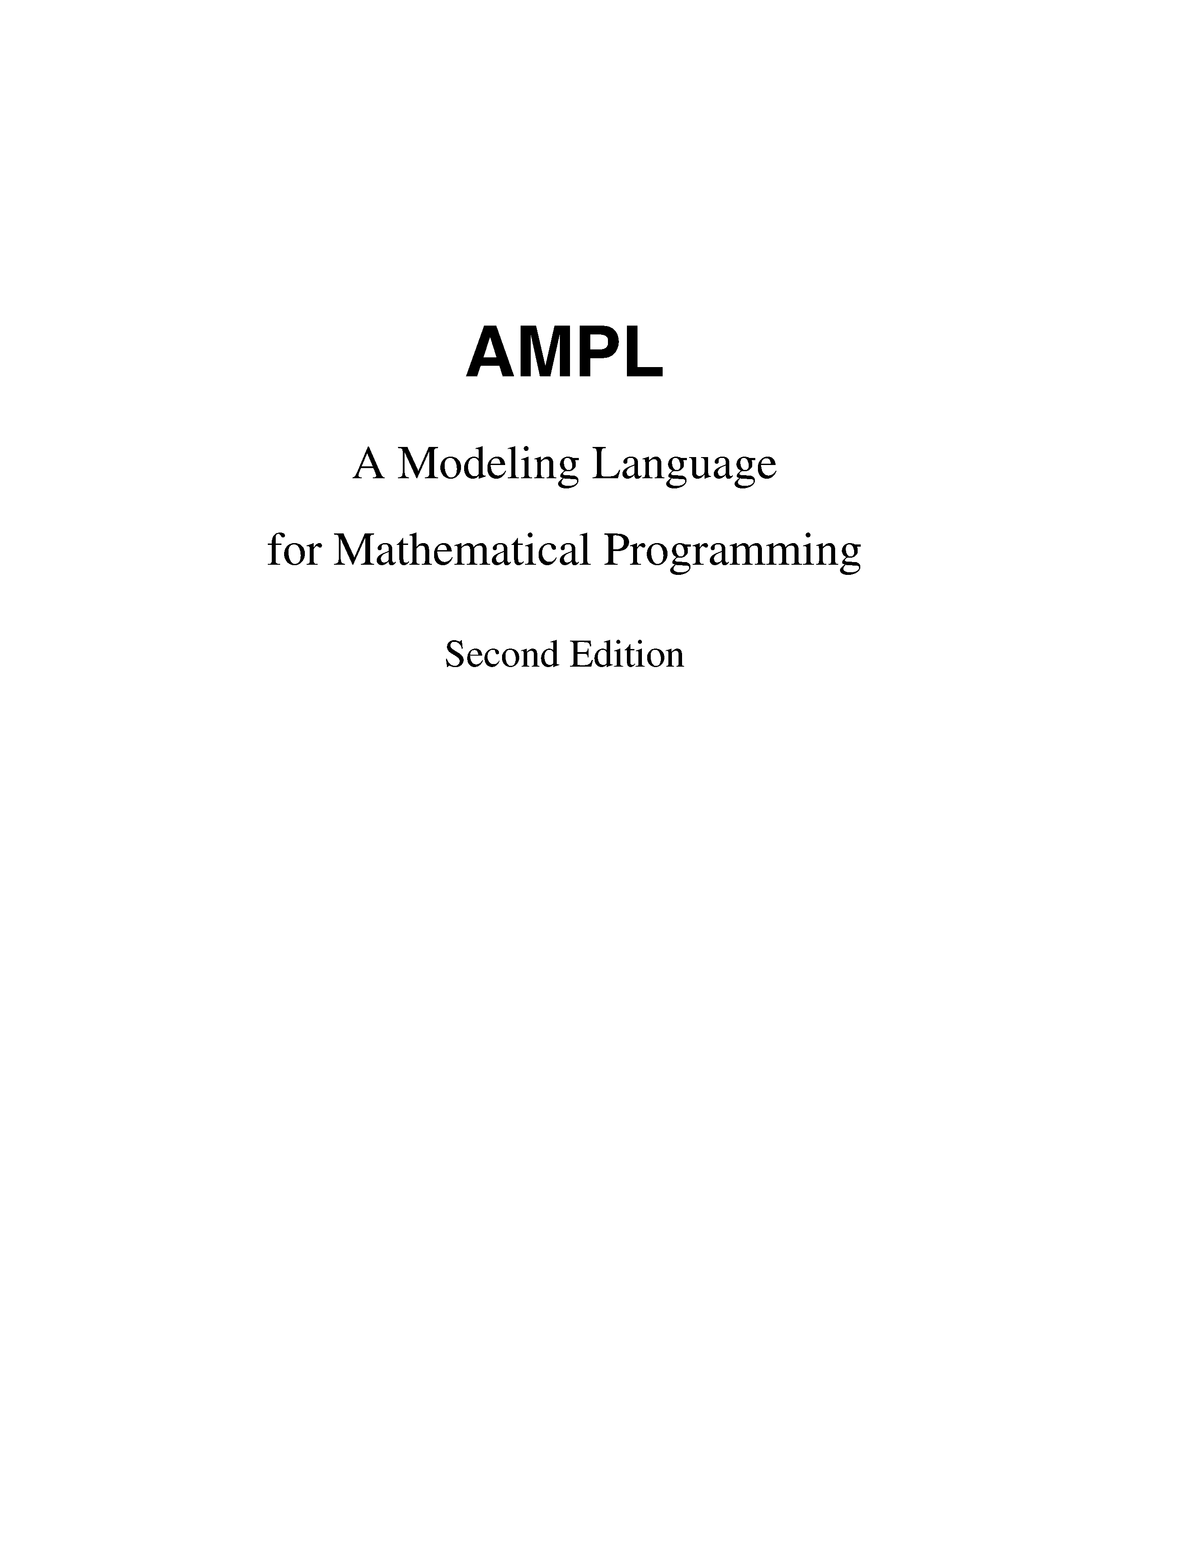 AMPL : A Modeling Language for Mathematical Programming